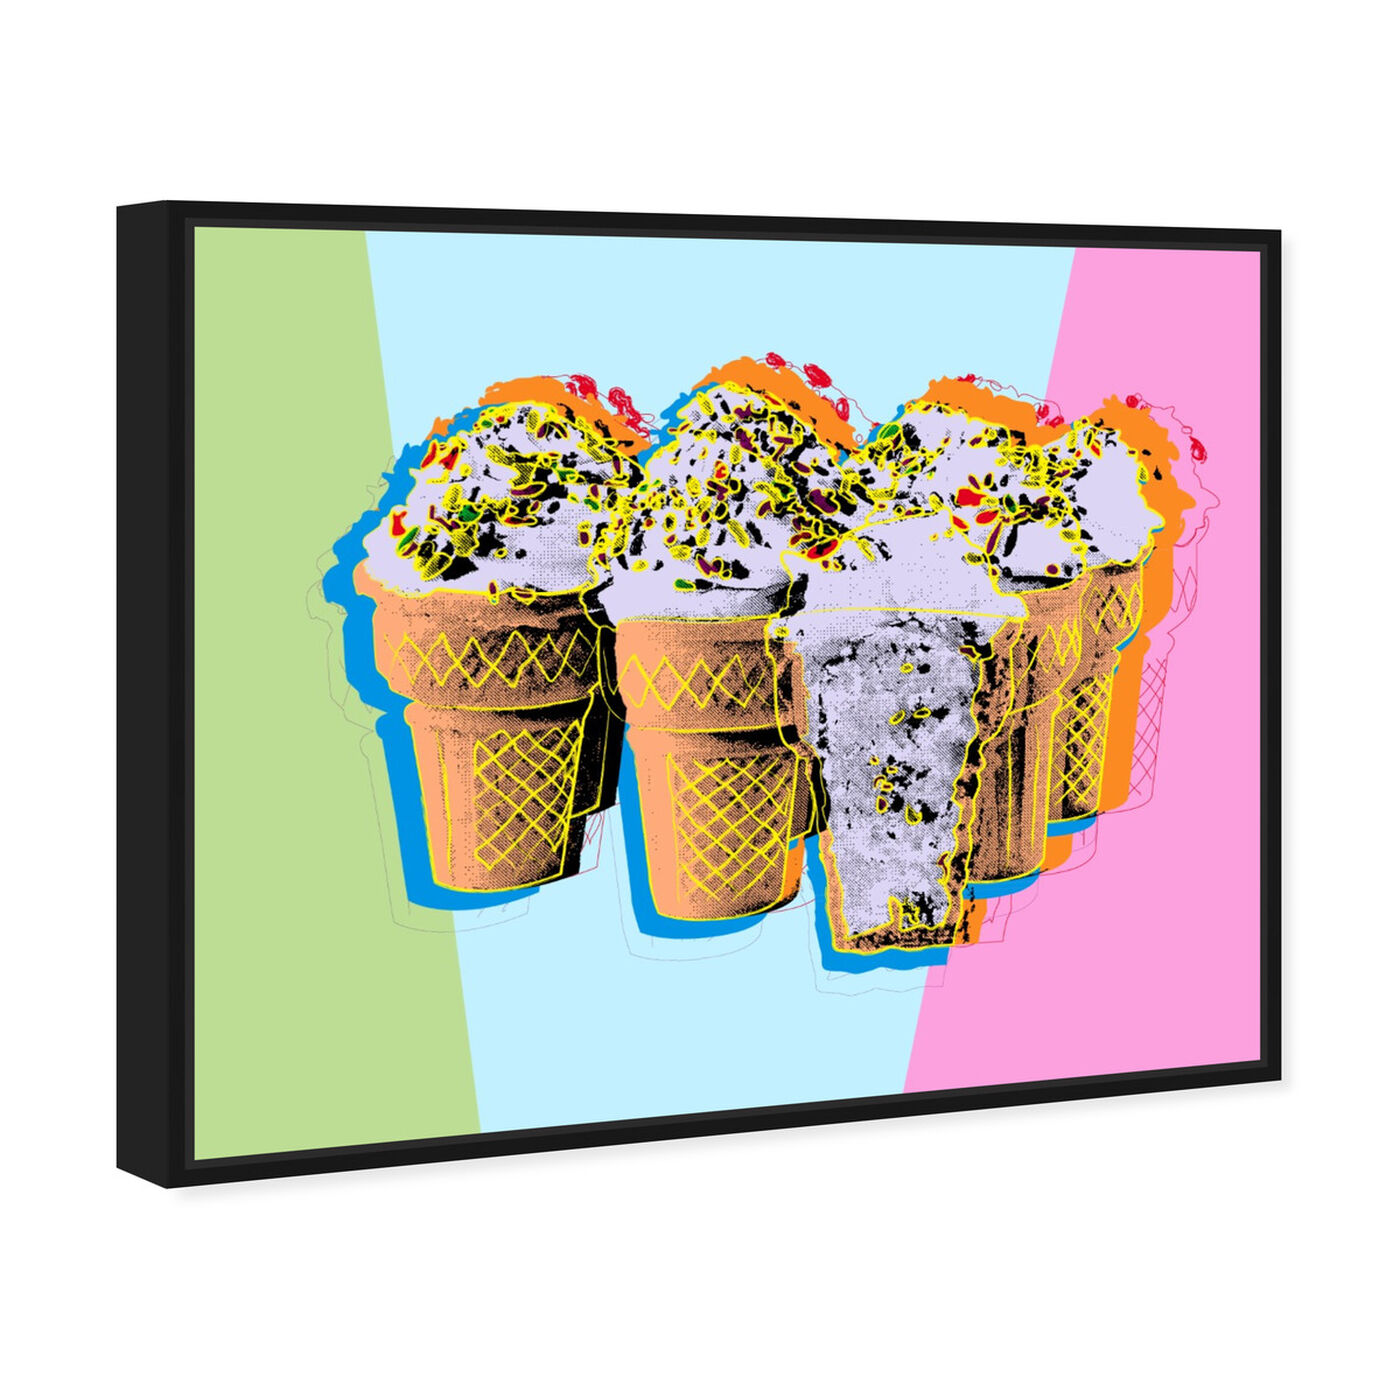 Angled view of Pastel Ice Cream featuring food and cuisine and ice cream and milkshakes art.